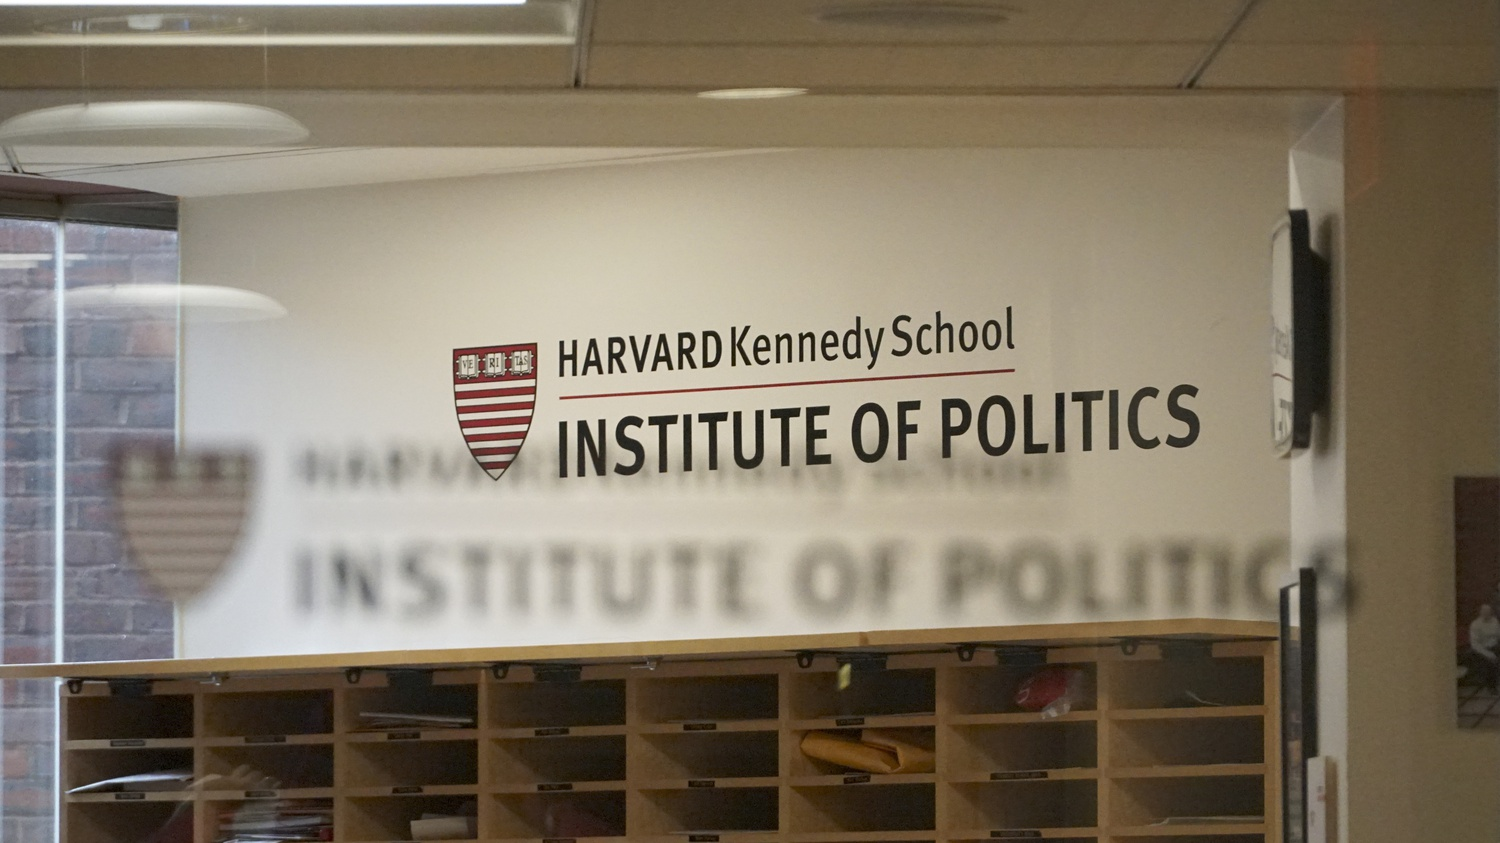 The Harvard Kennedy School is offering a workshop series through the Center of Public Leadership and Politics which will focus on how to run for office.